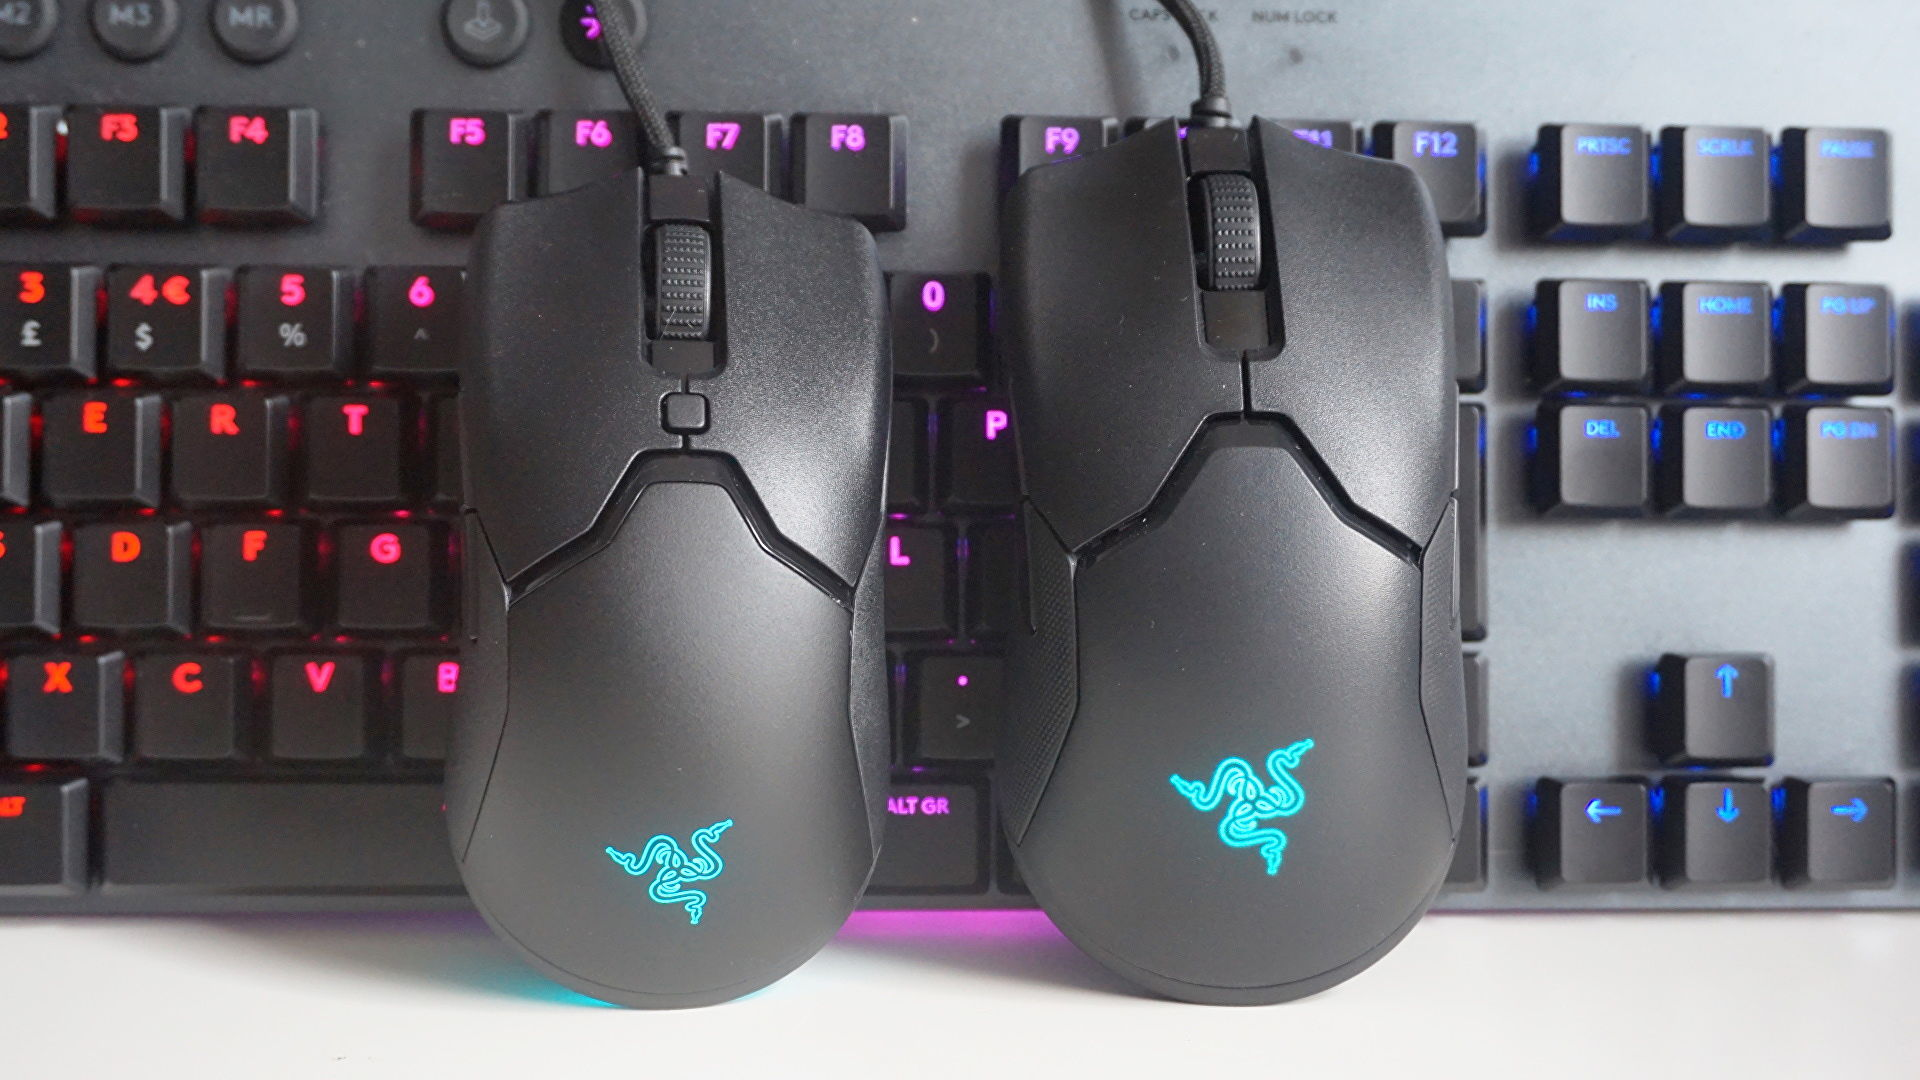 Razer's Viper Mini mouse can be snapped up for £25 today